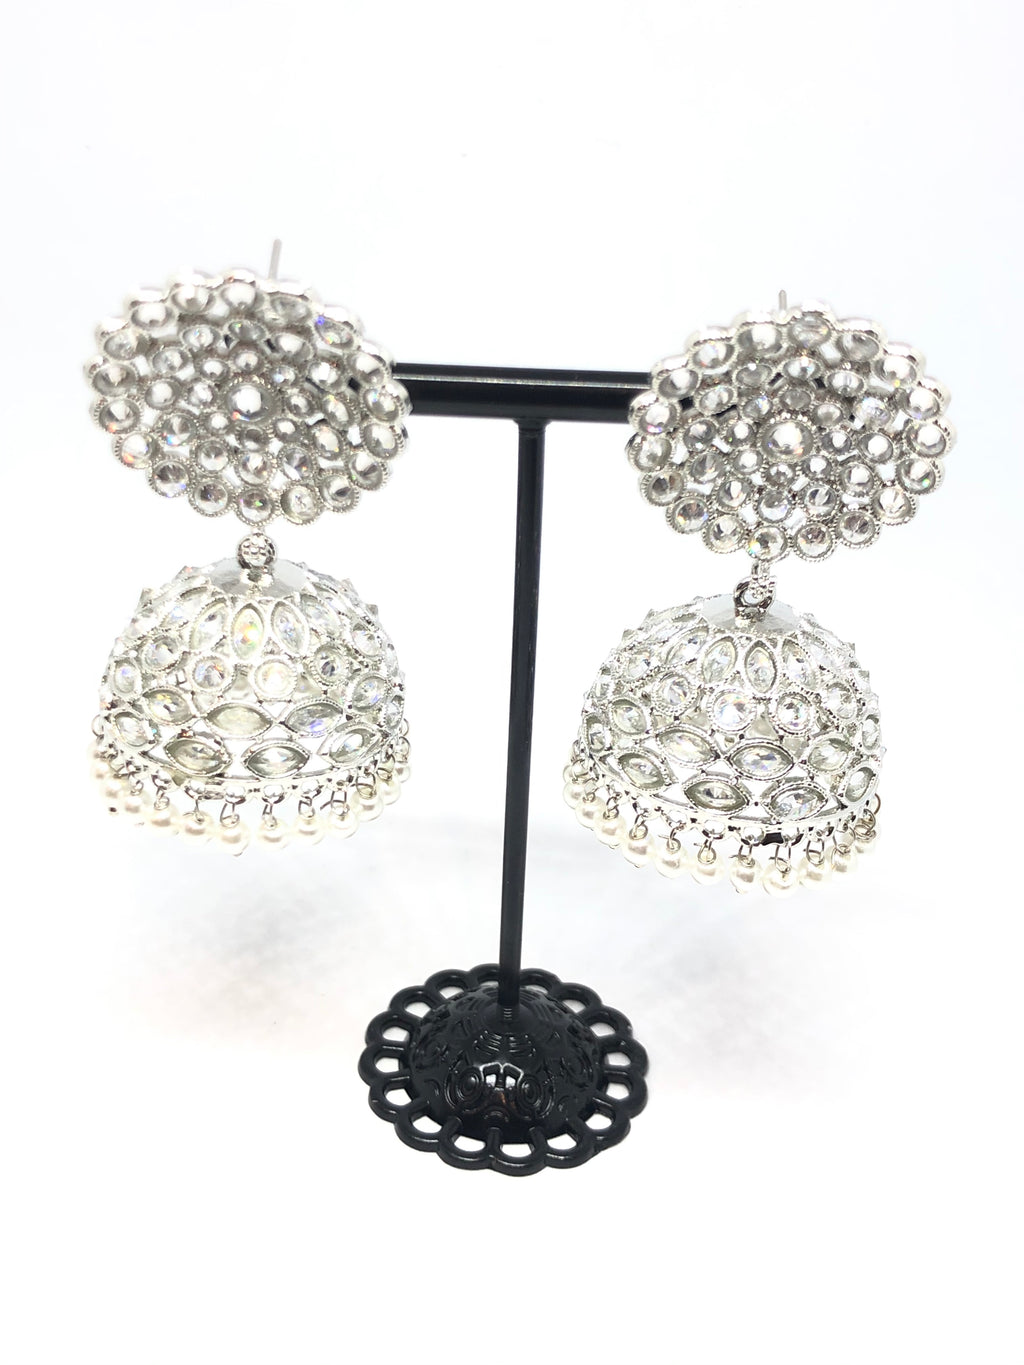 Silver Indian Big Jhumkas Round with White Pearls